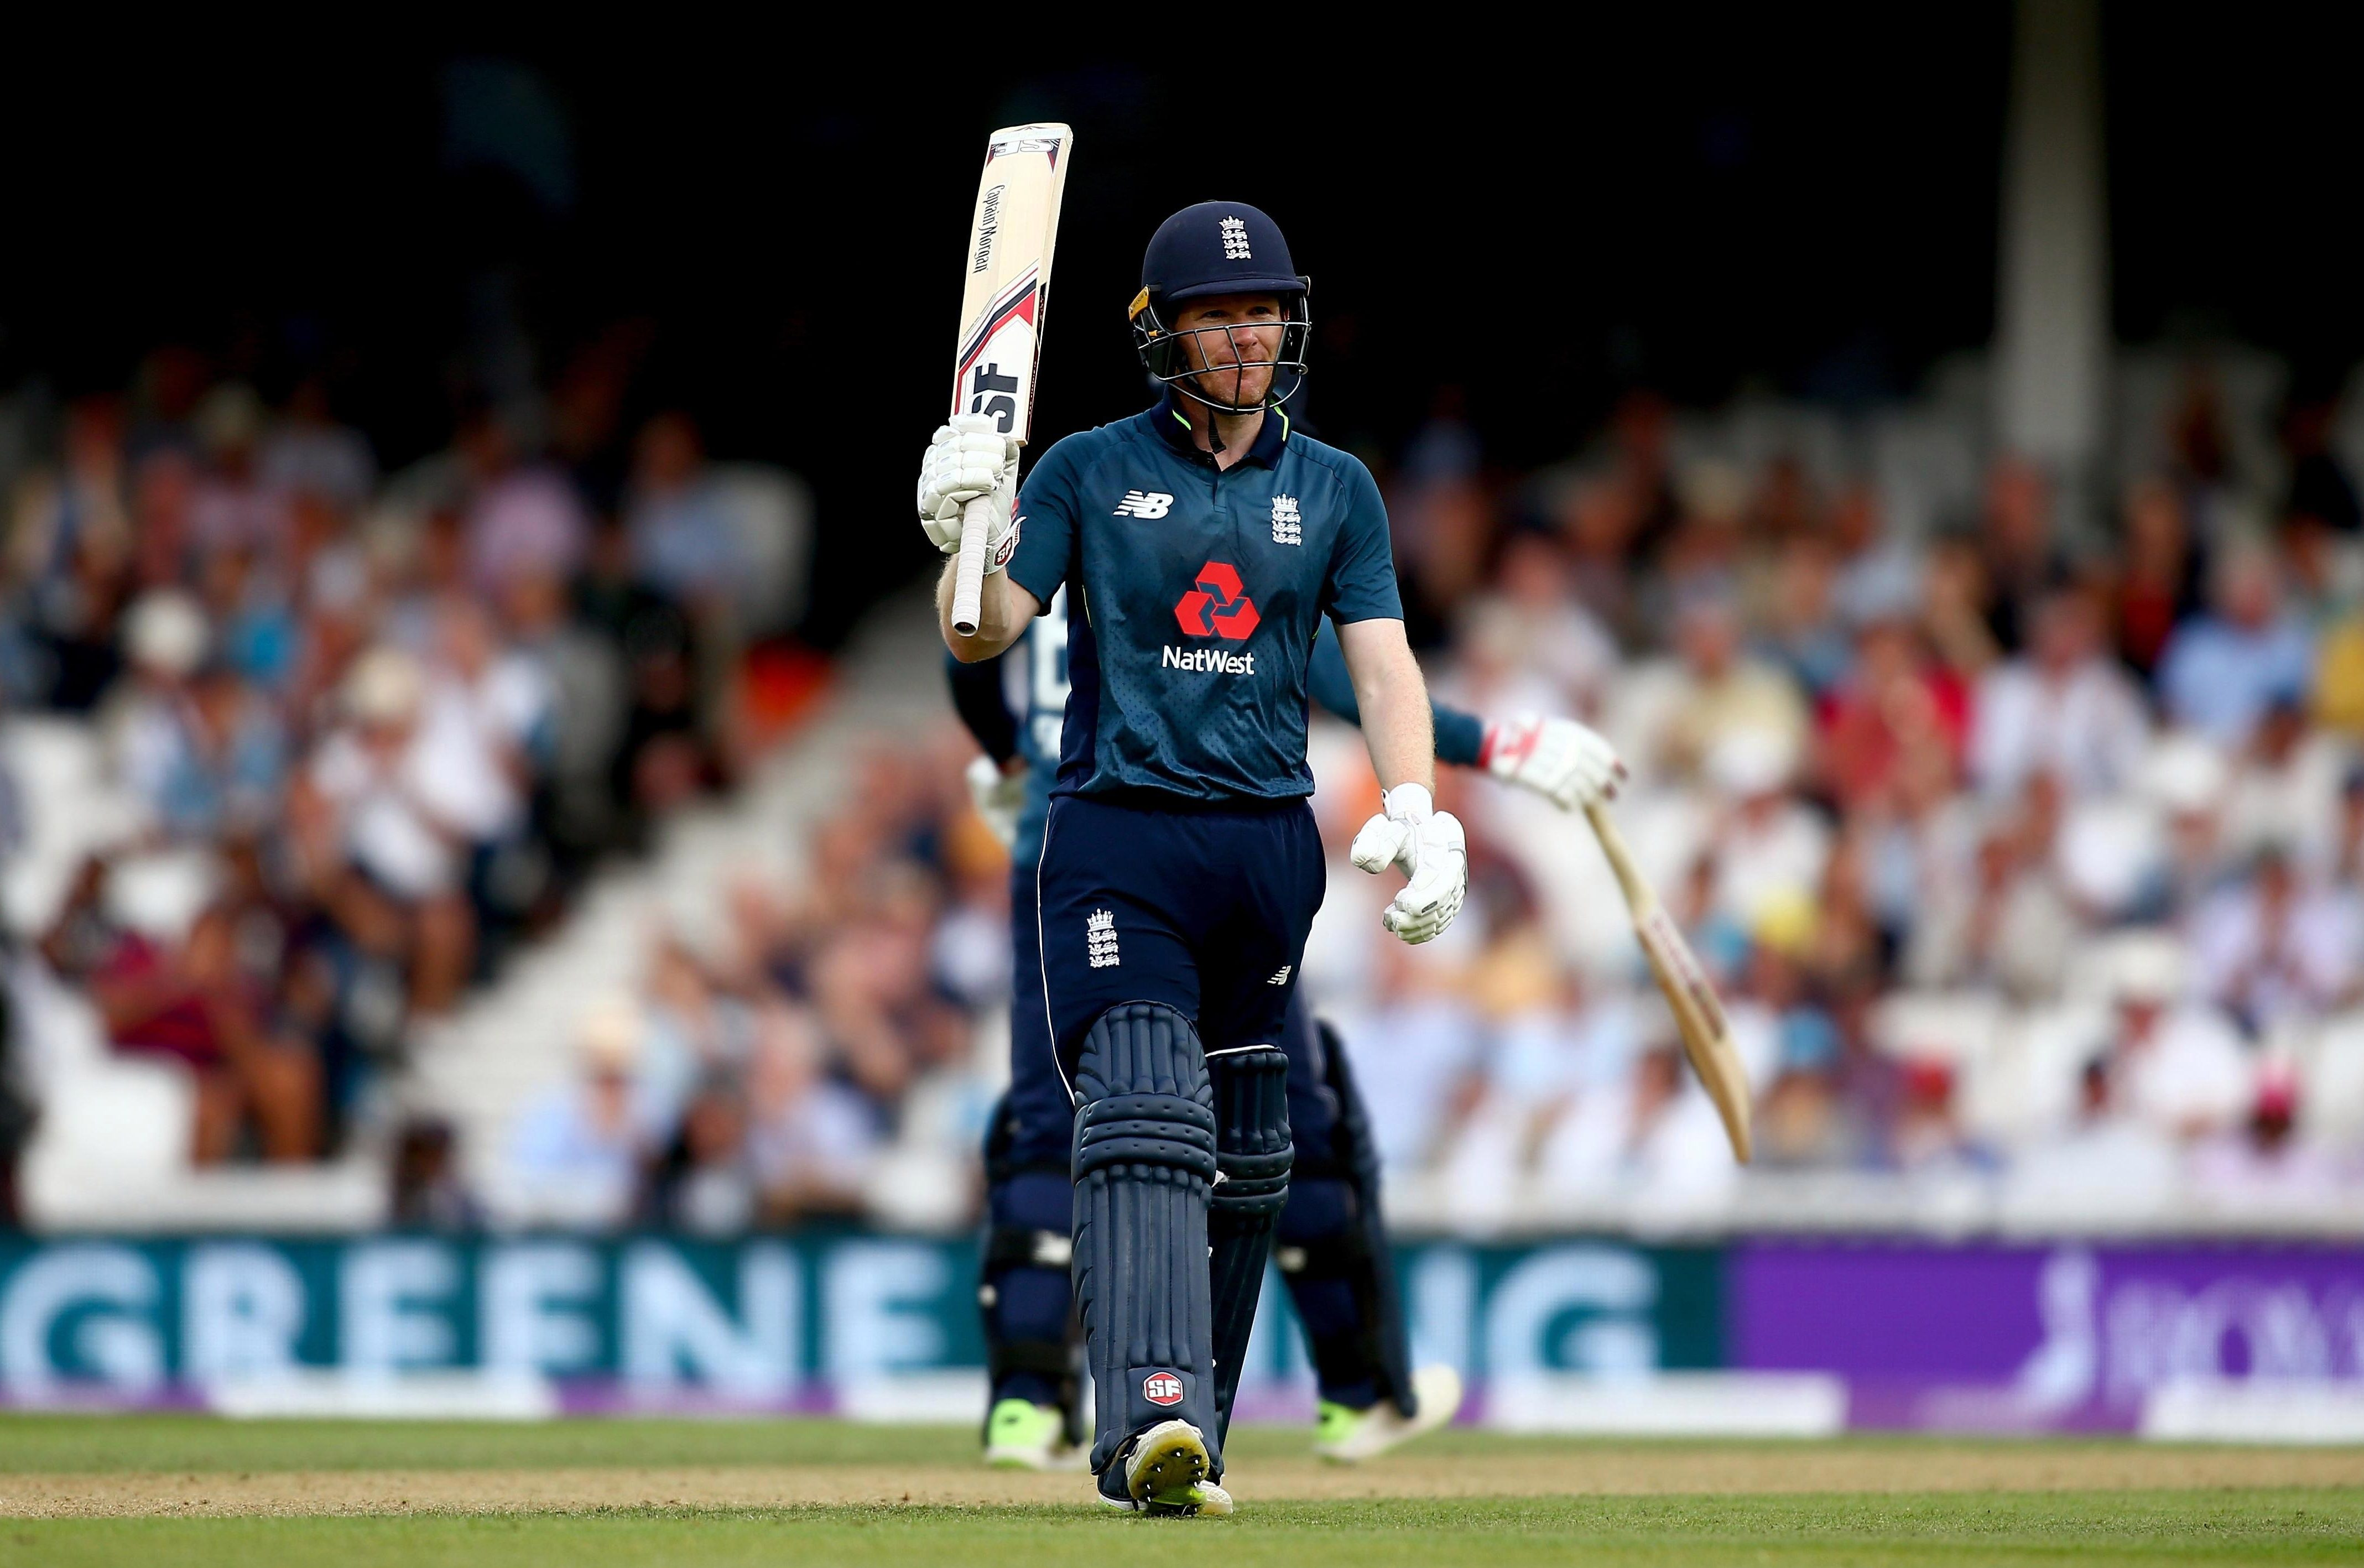 Eoin Morgan scored a half century after the Aussies failed to post a challenging total